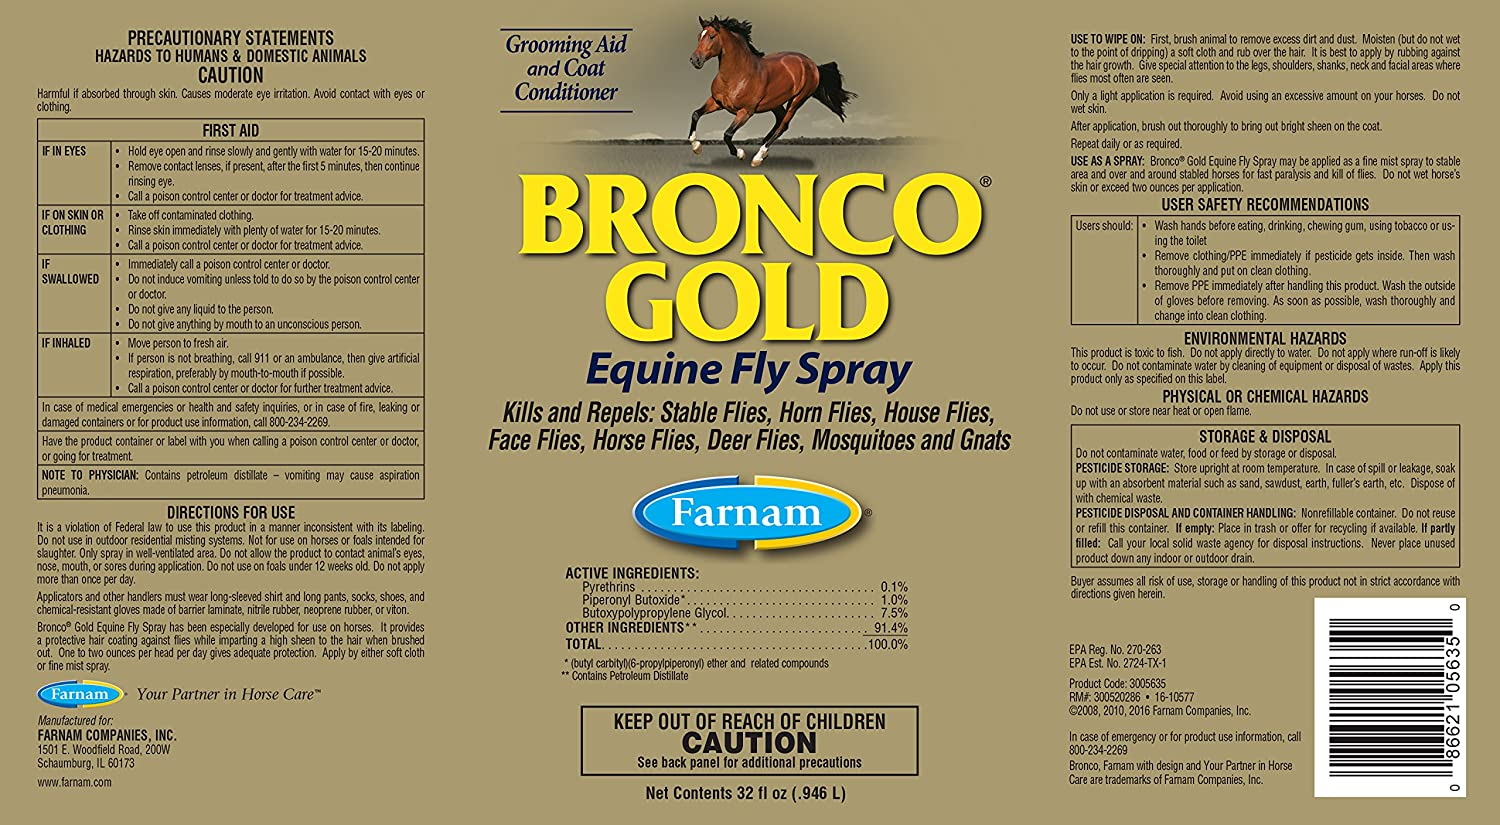 Farnam Bronco Gold